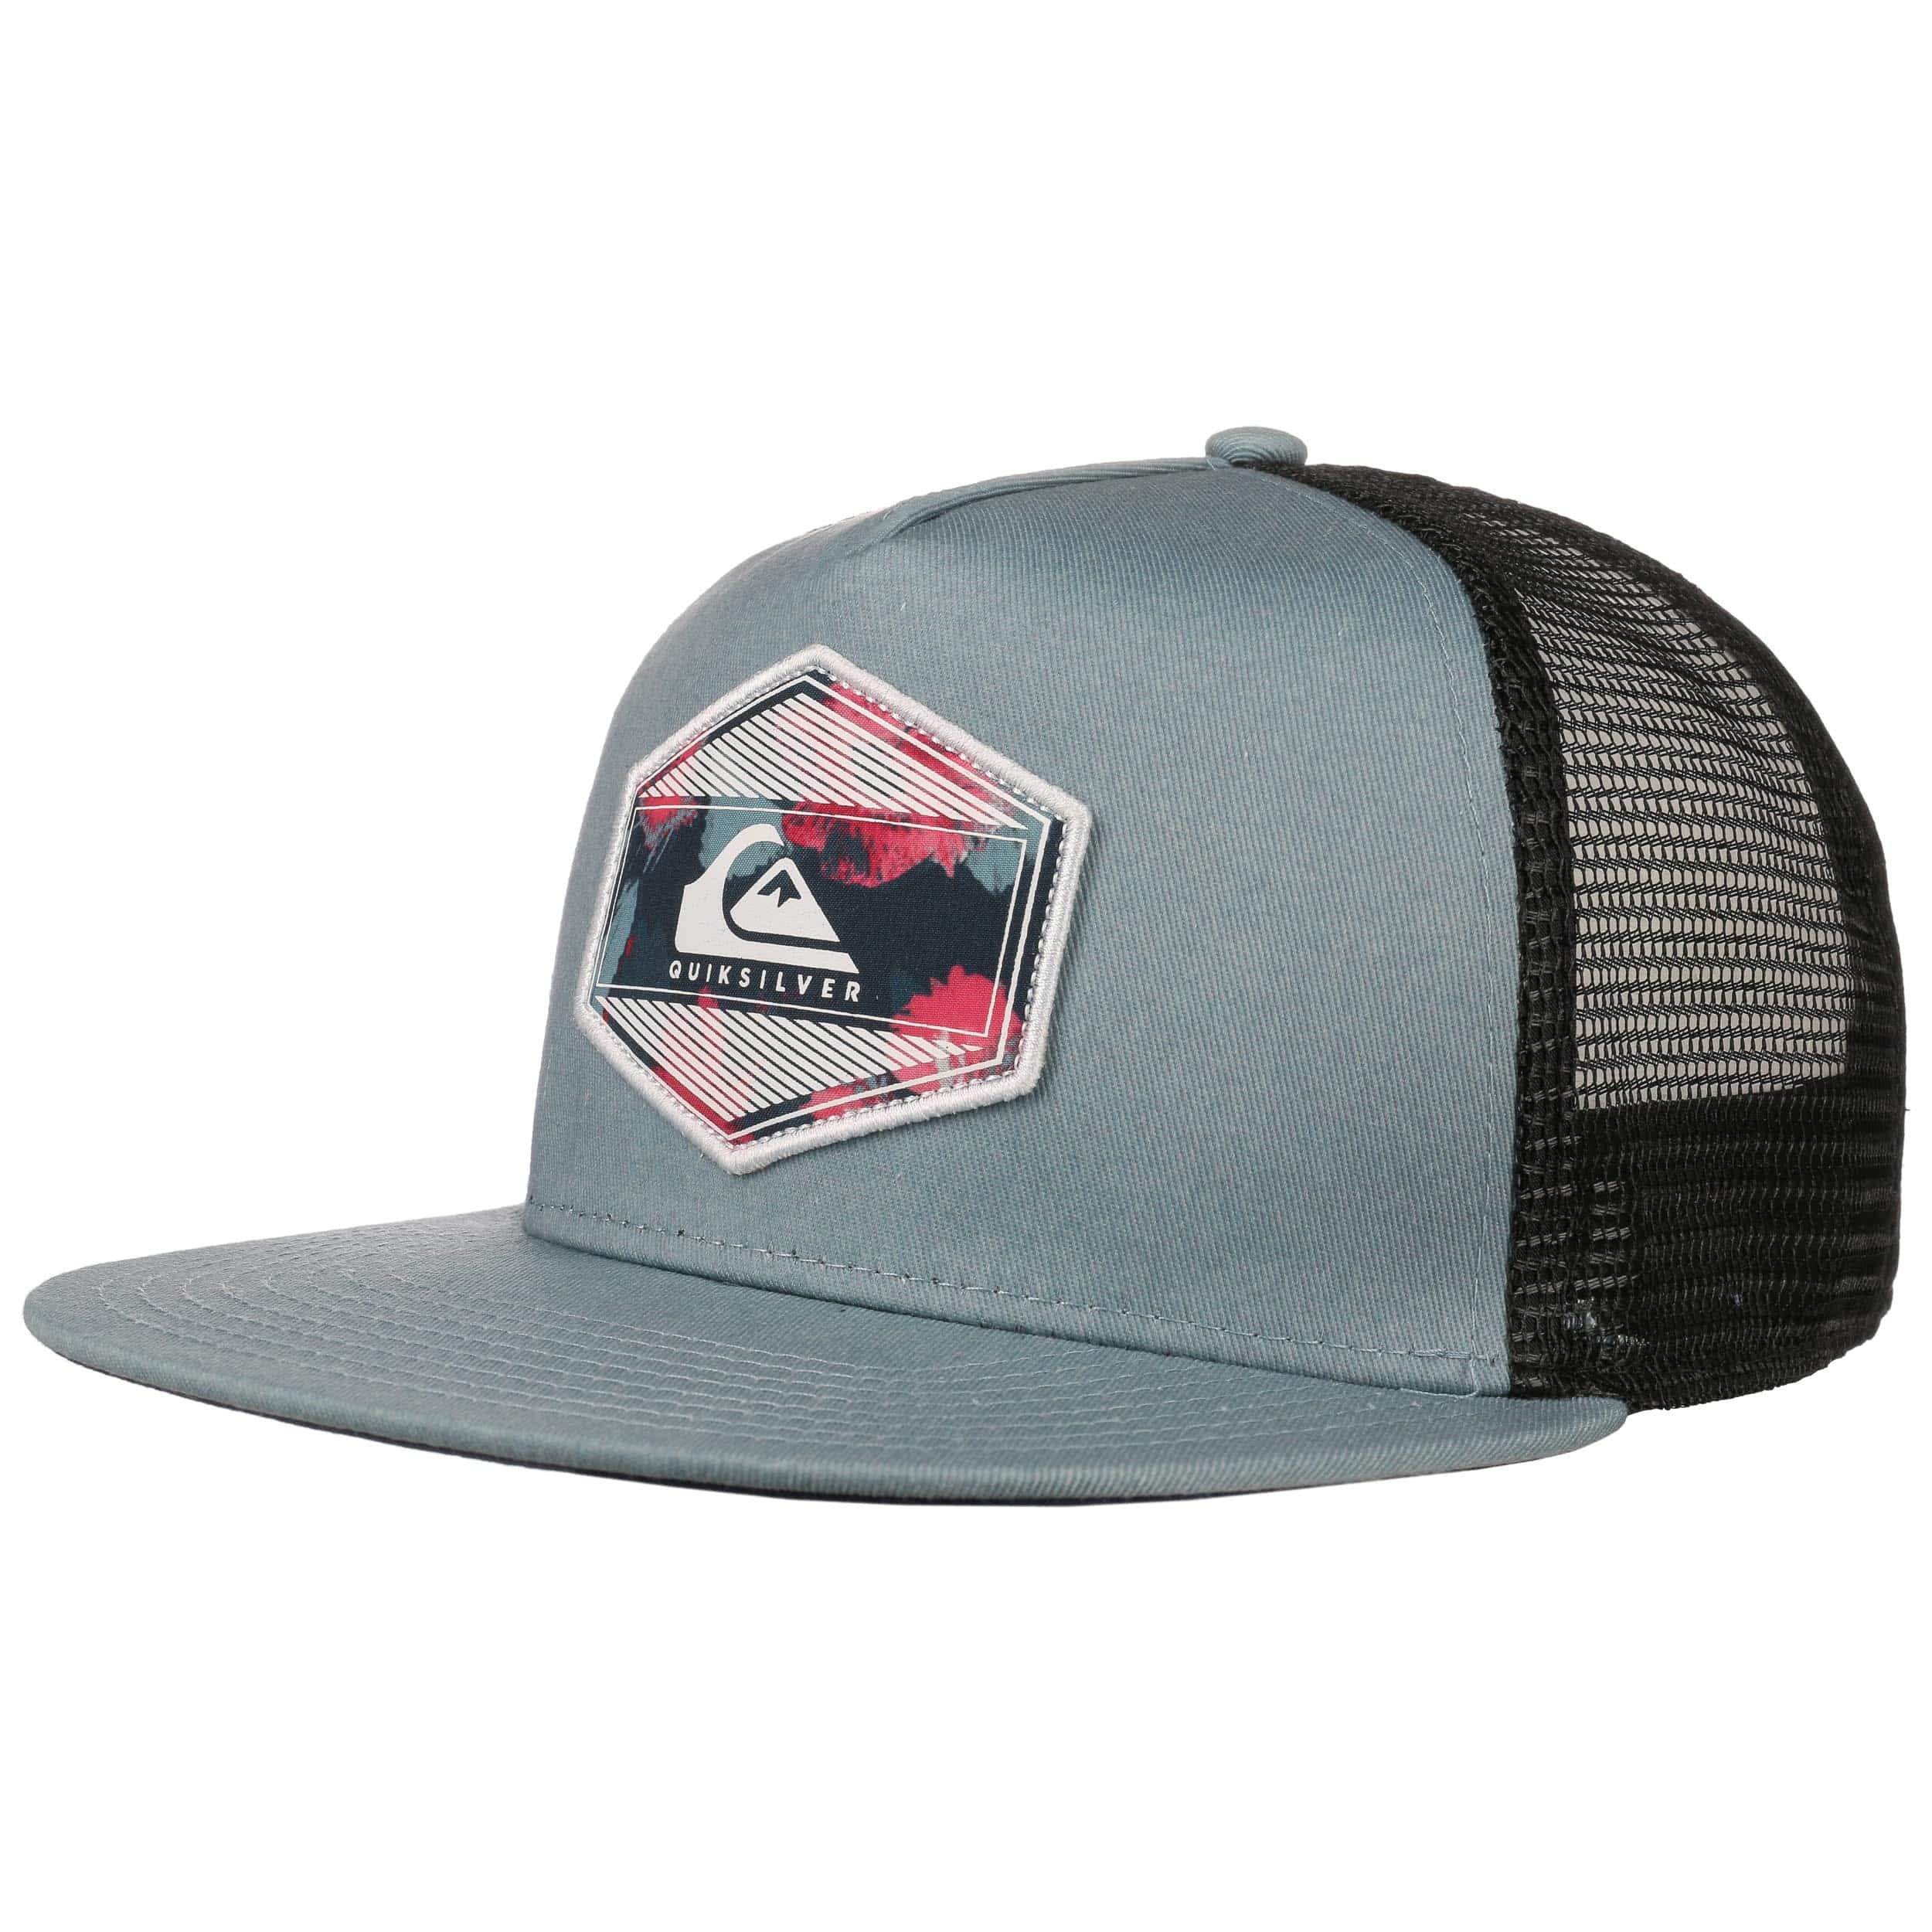 ... low price morsen trucker cap by quiksilver light blue 5 85ead 95501 00f9cf0ff3a